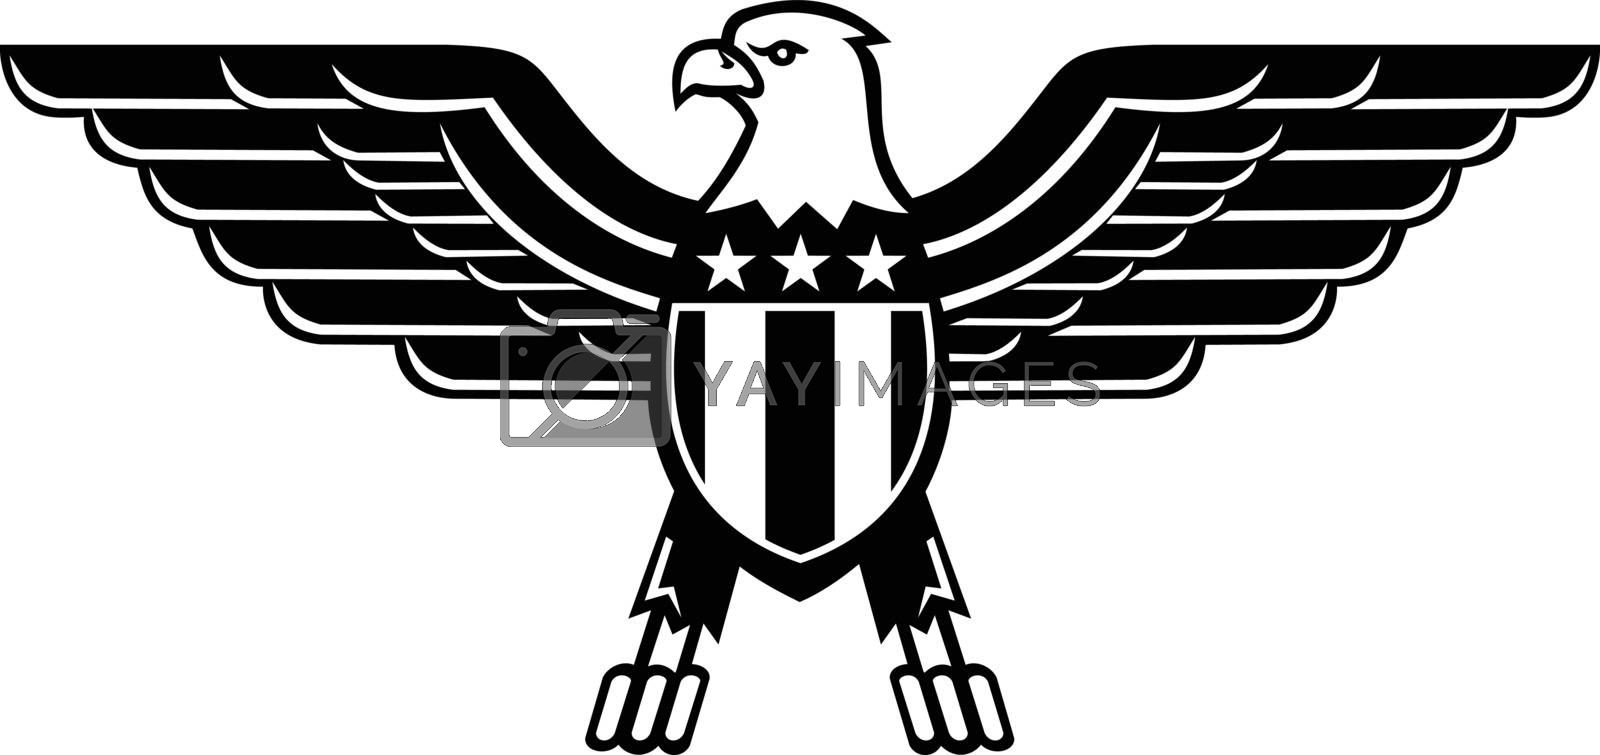 Mascot illustration of a bald eagle with wings spread and American or United States stars and stripes star spangled banner flag on chest viewed from front  on isolated background in retro style.